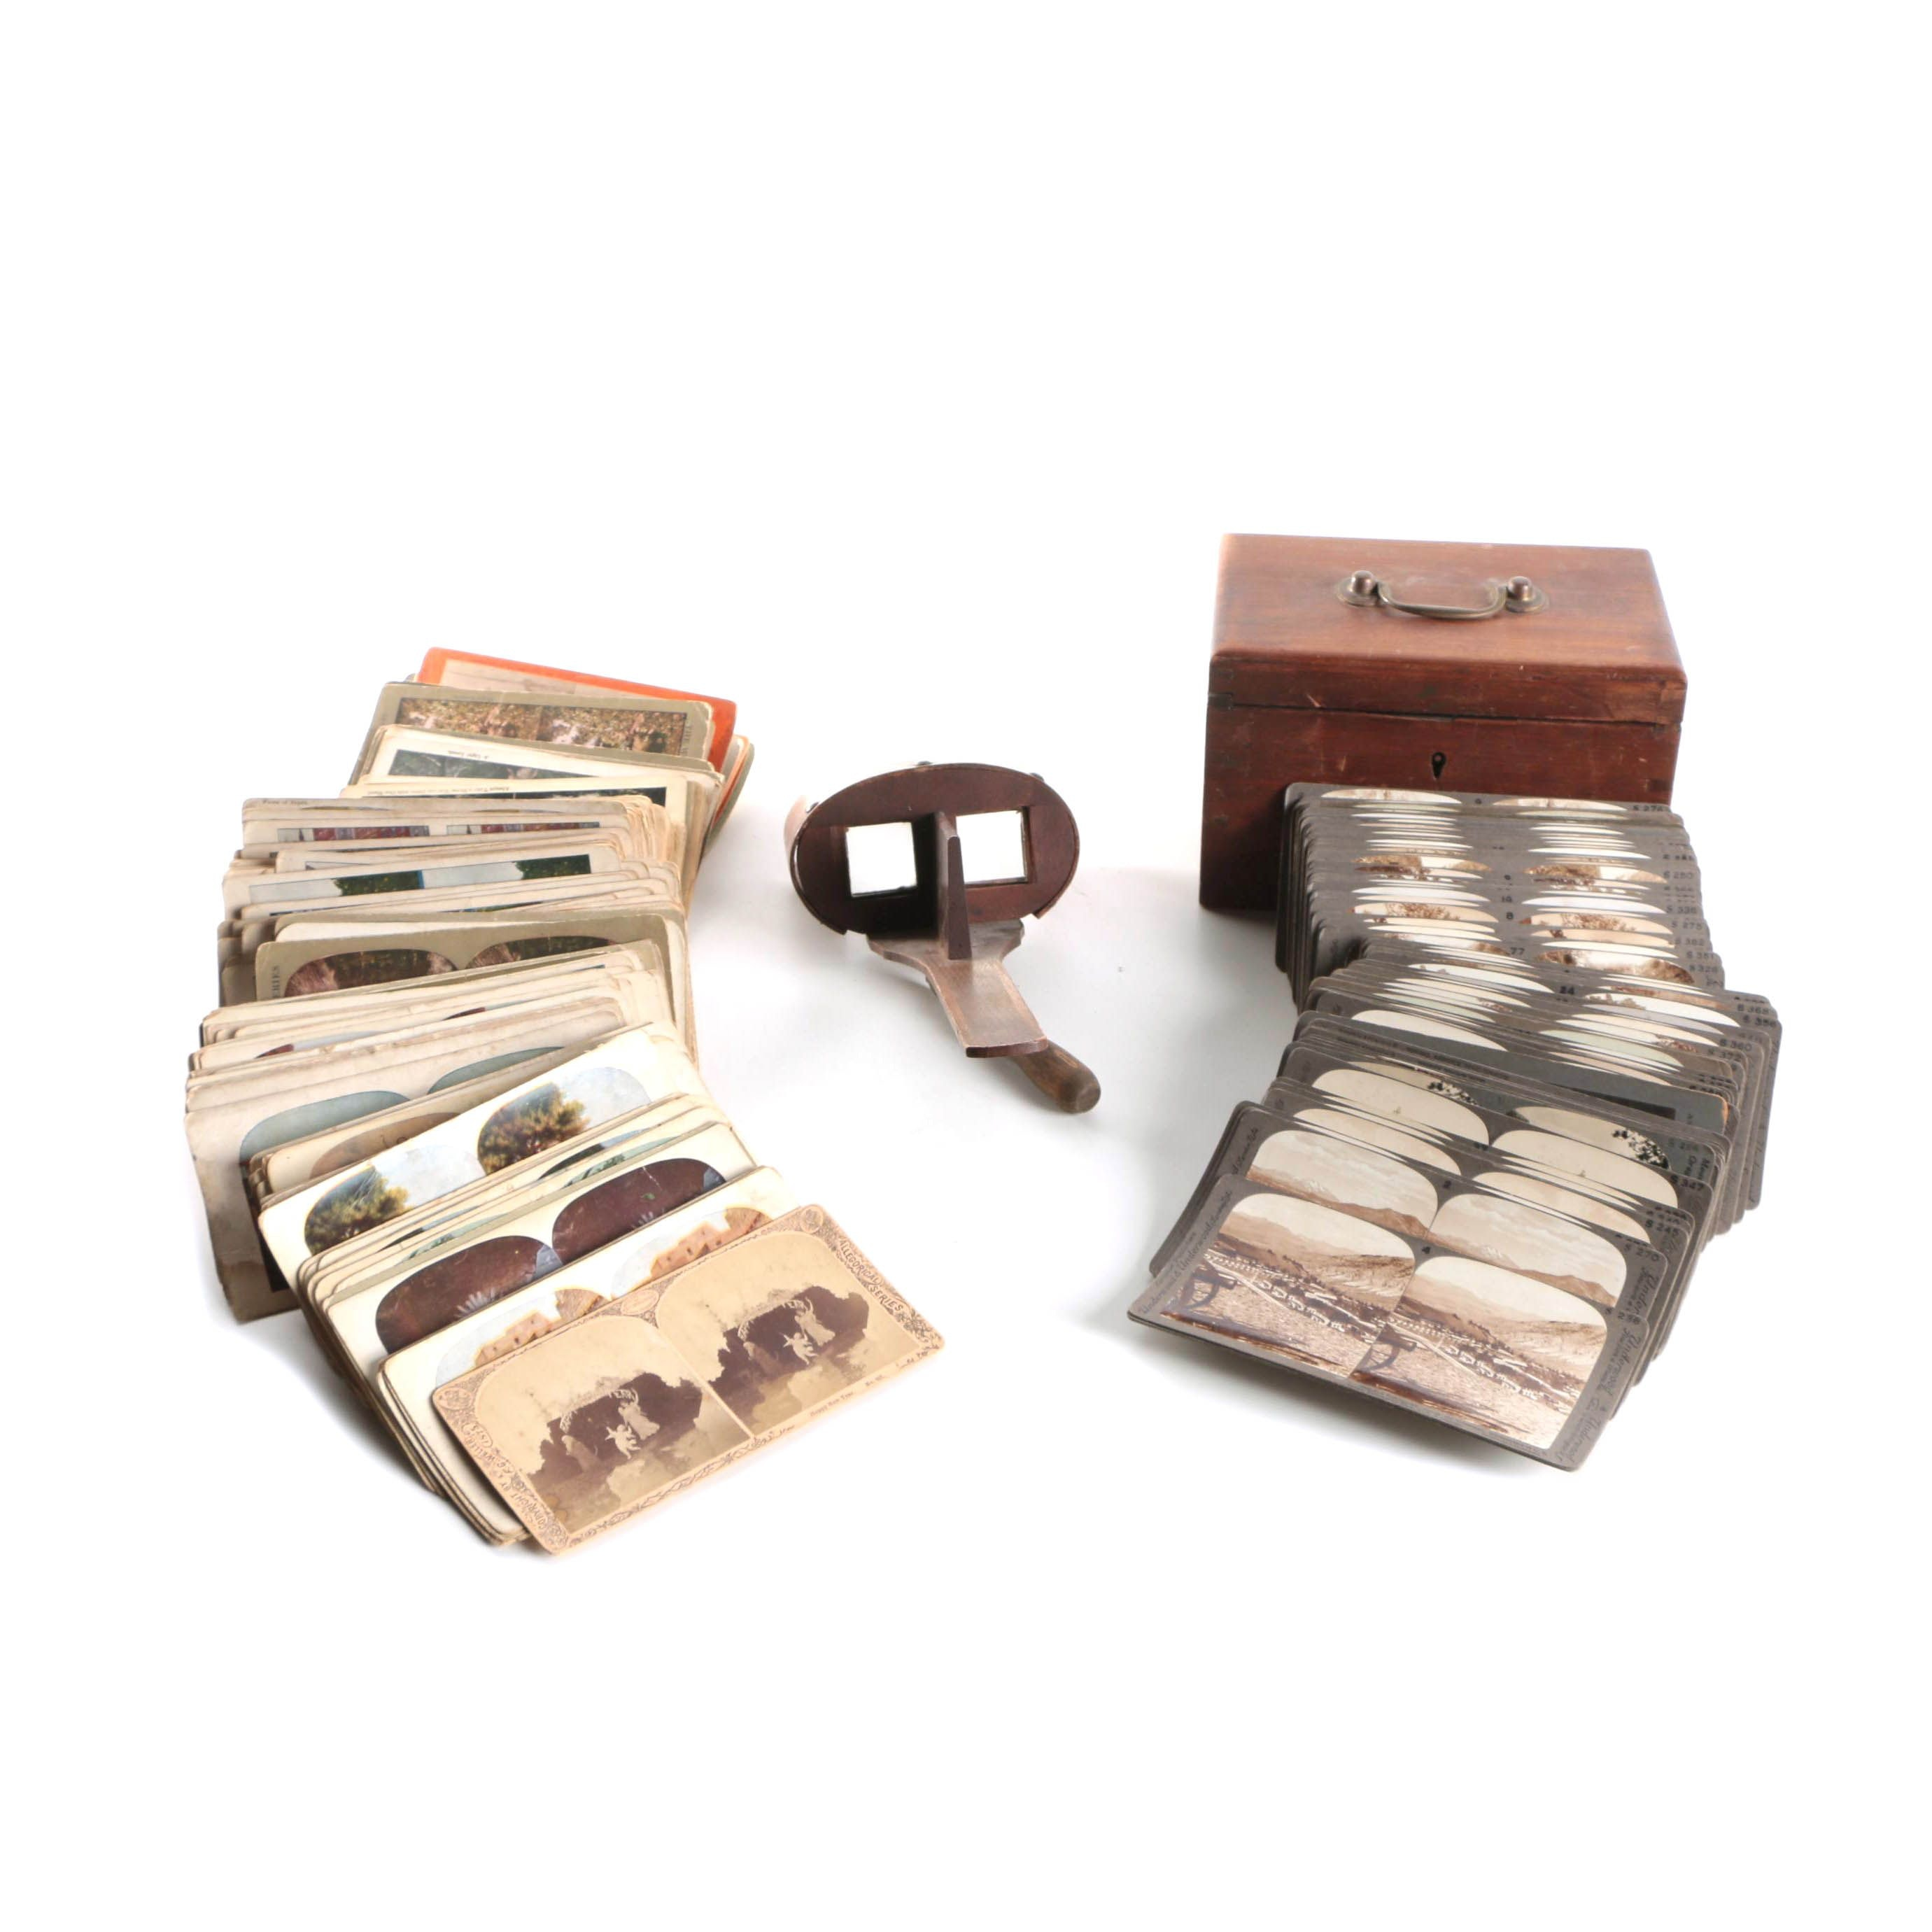 Antique Stereoscope Cards and Viewer